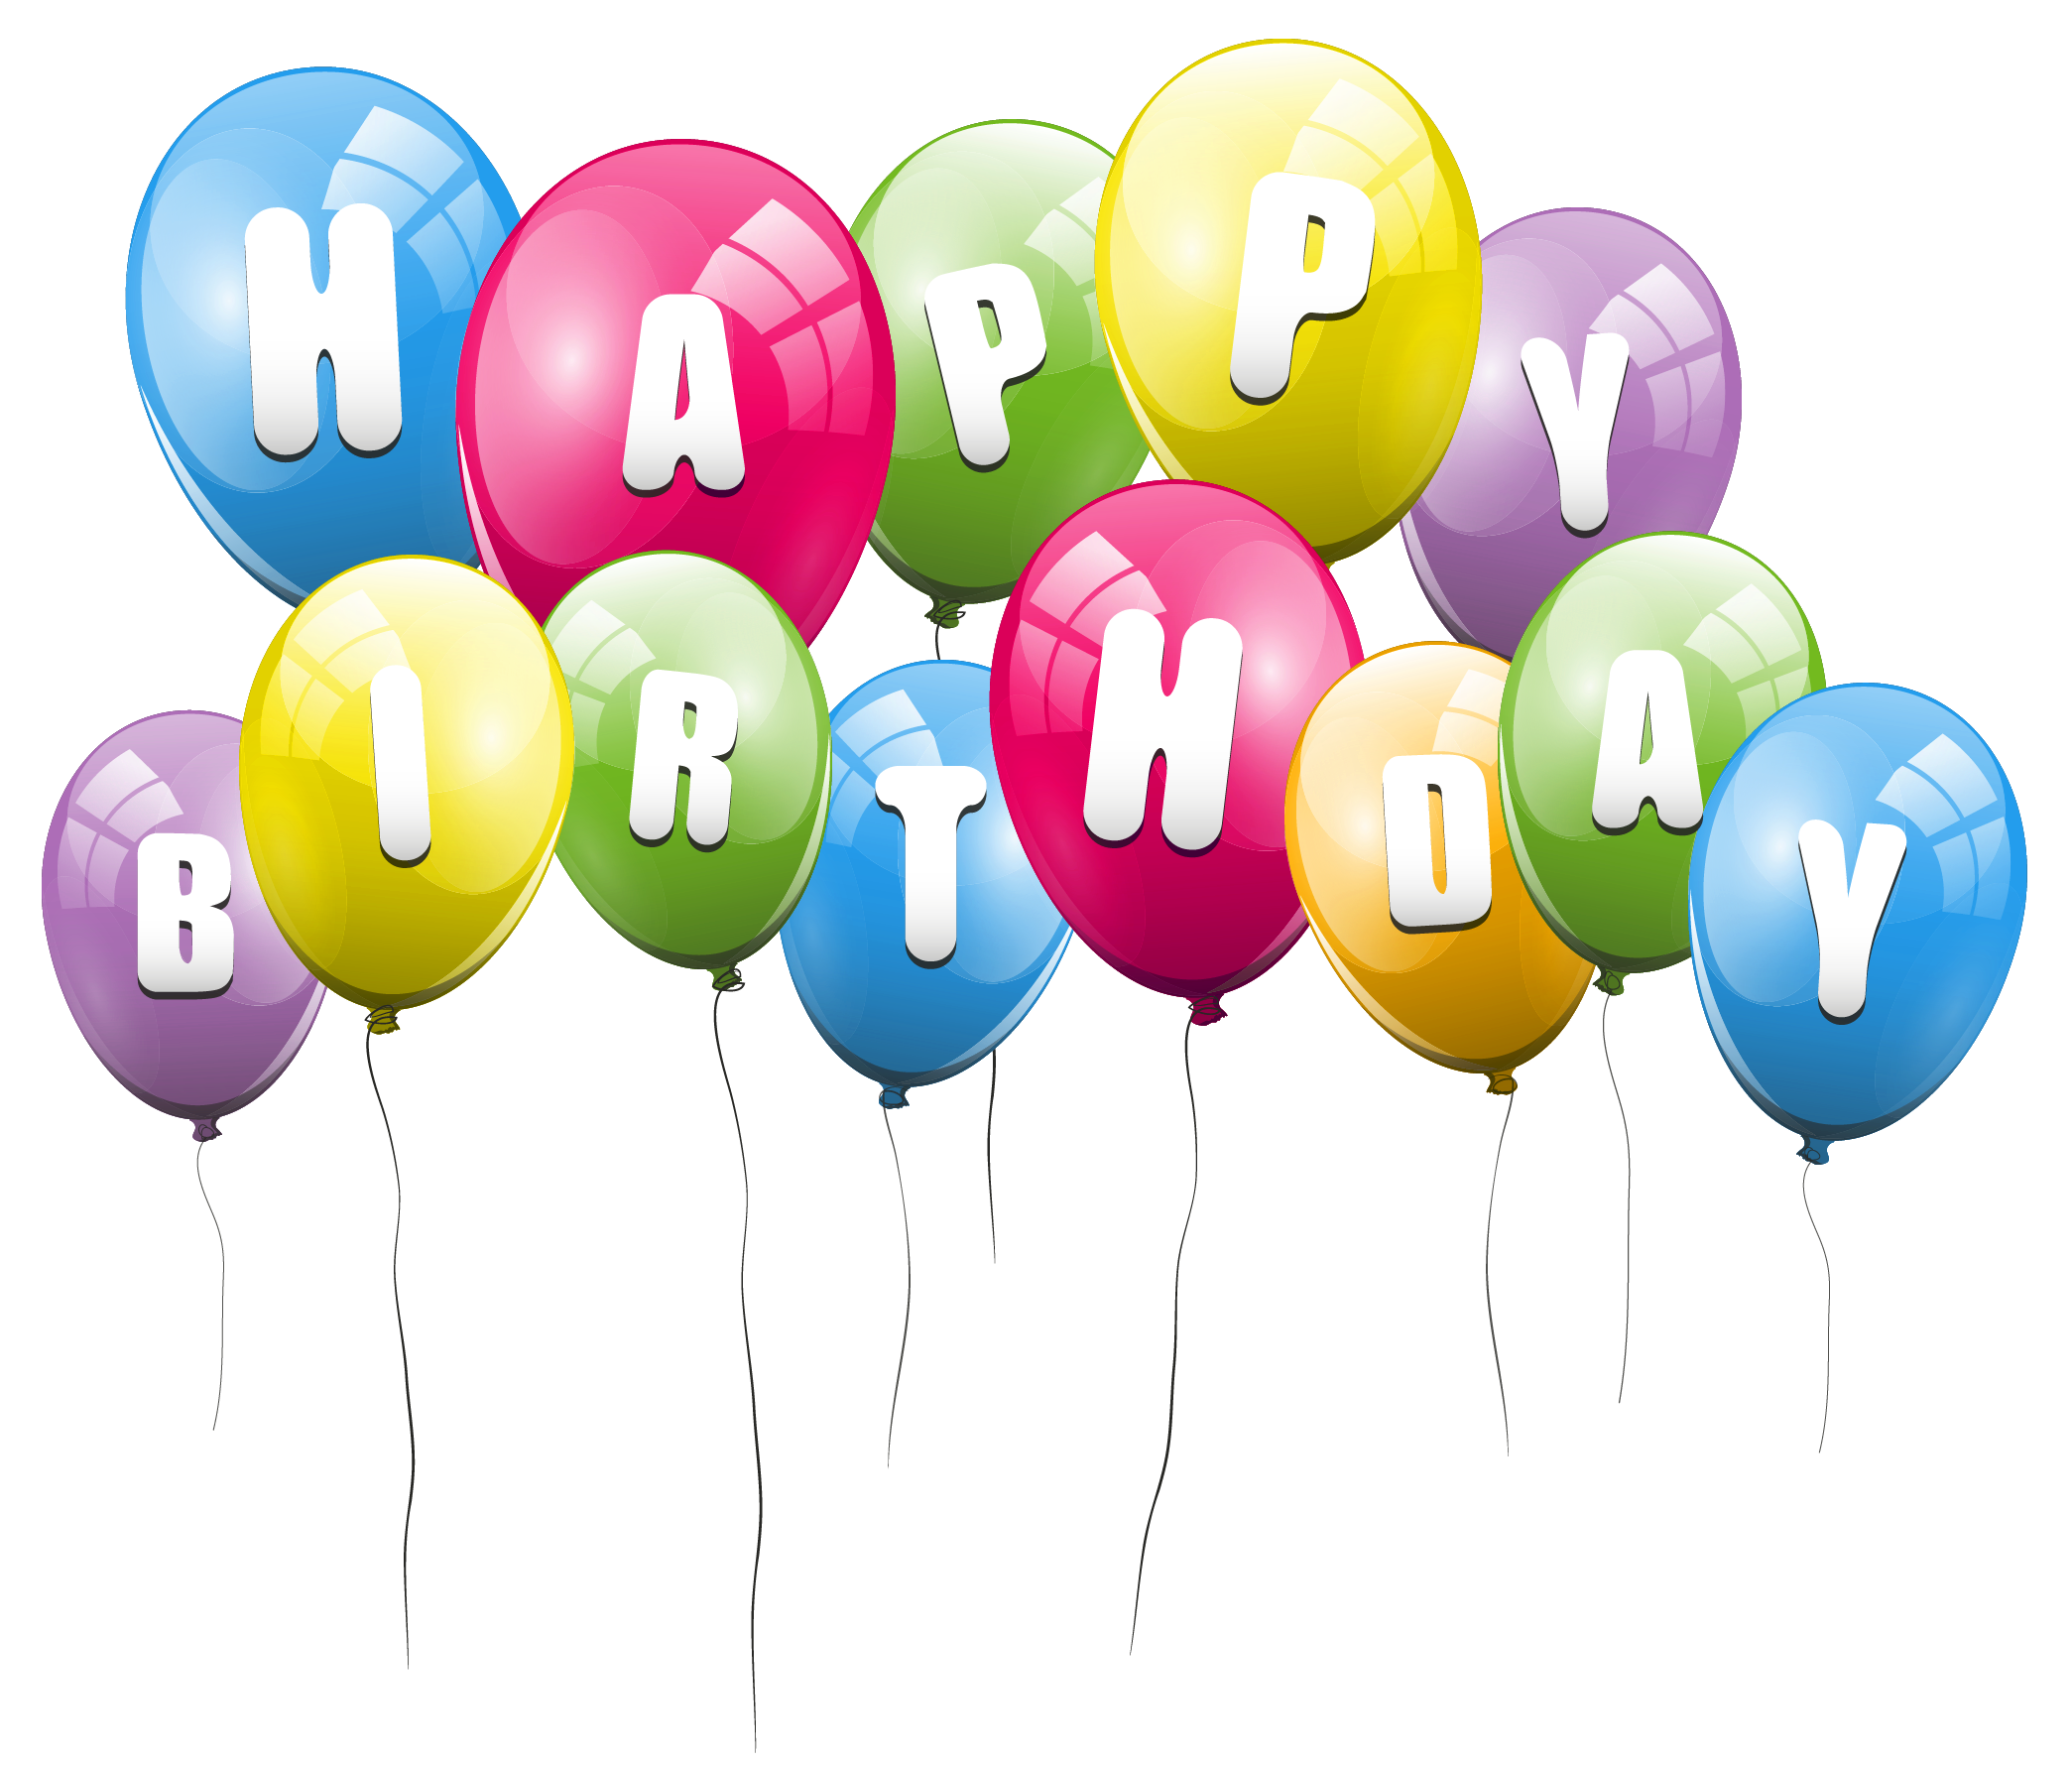 Free Birthday Clipart Transparent Background, Download Free.